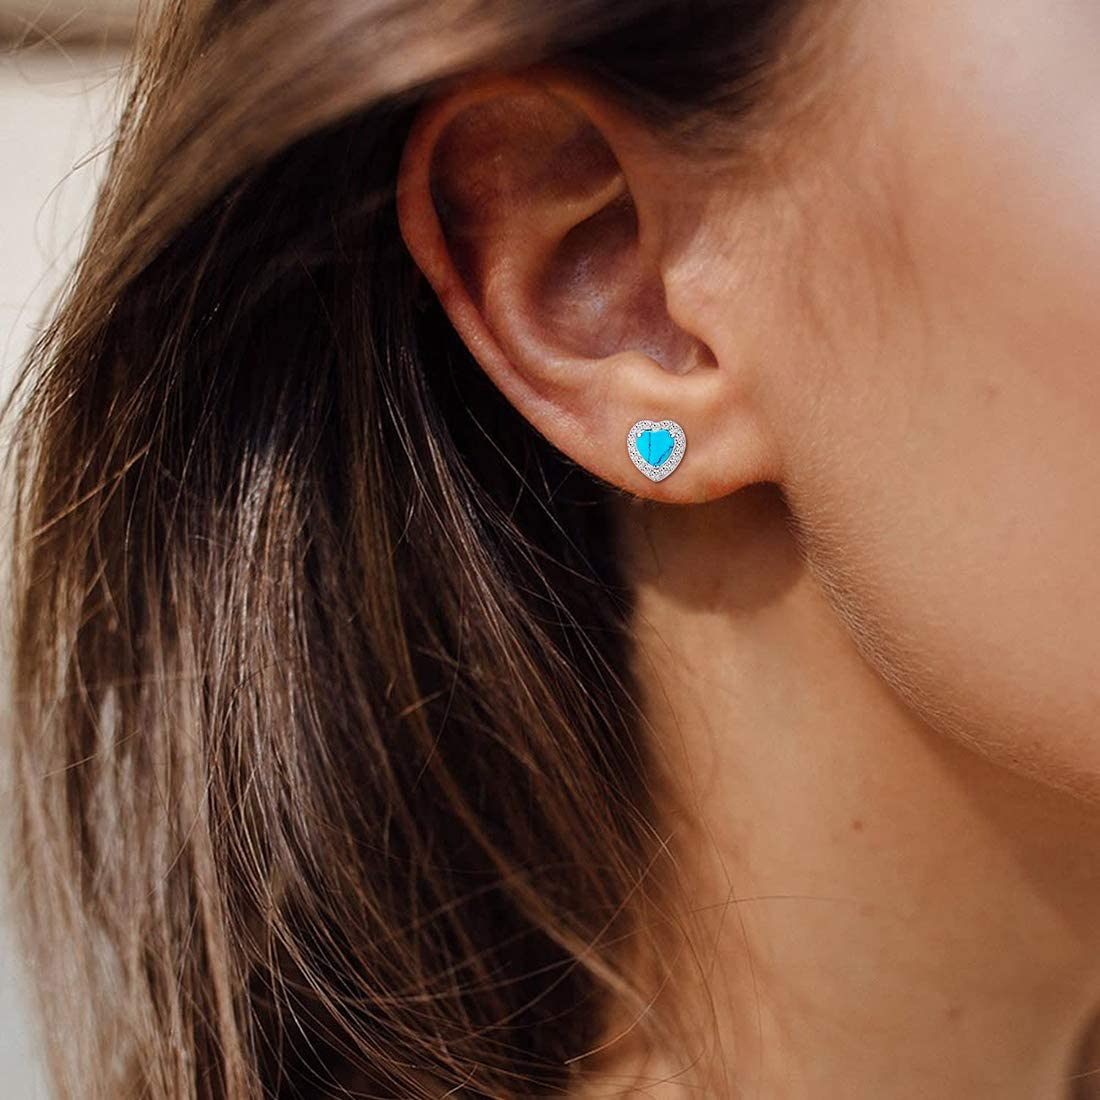 Agvana Christmas Gifts Sterling Silver Created Heart//Oval Blue Turquoise Halo CZ Small Stud Earrings Elegant December Birthstone Jewelry Gifts for Mom Grandma Women Girls